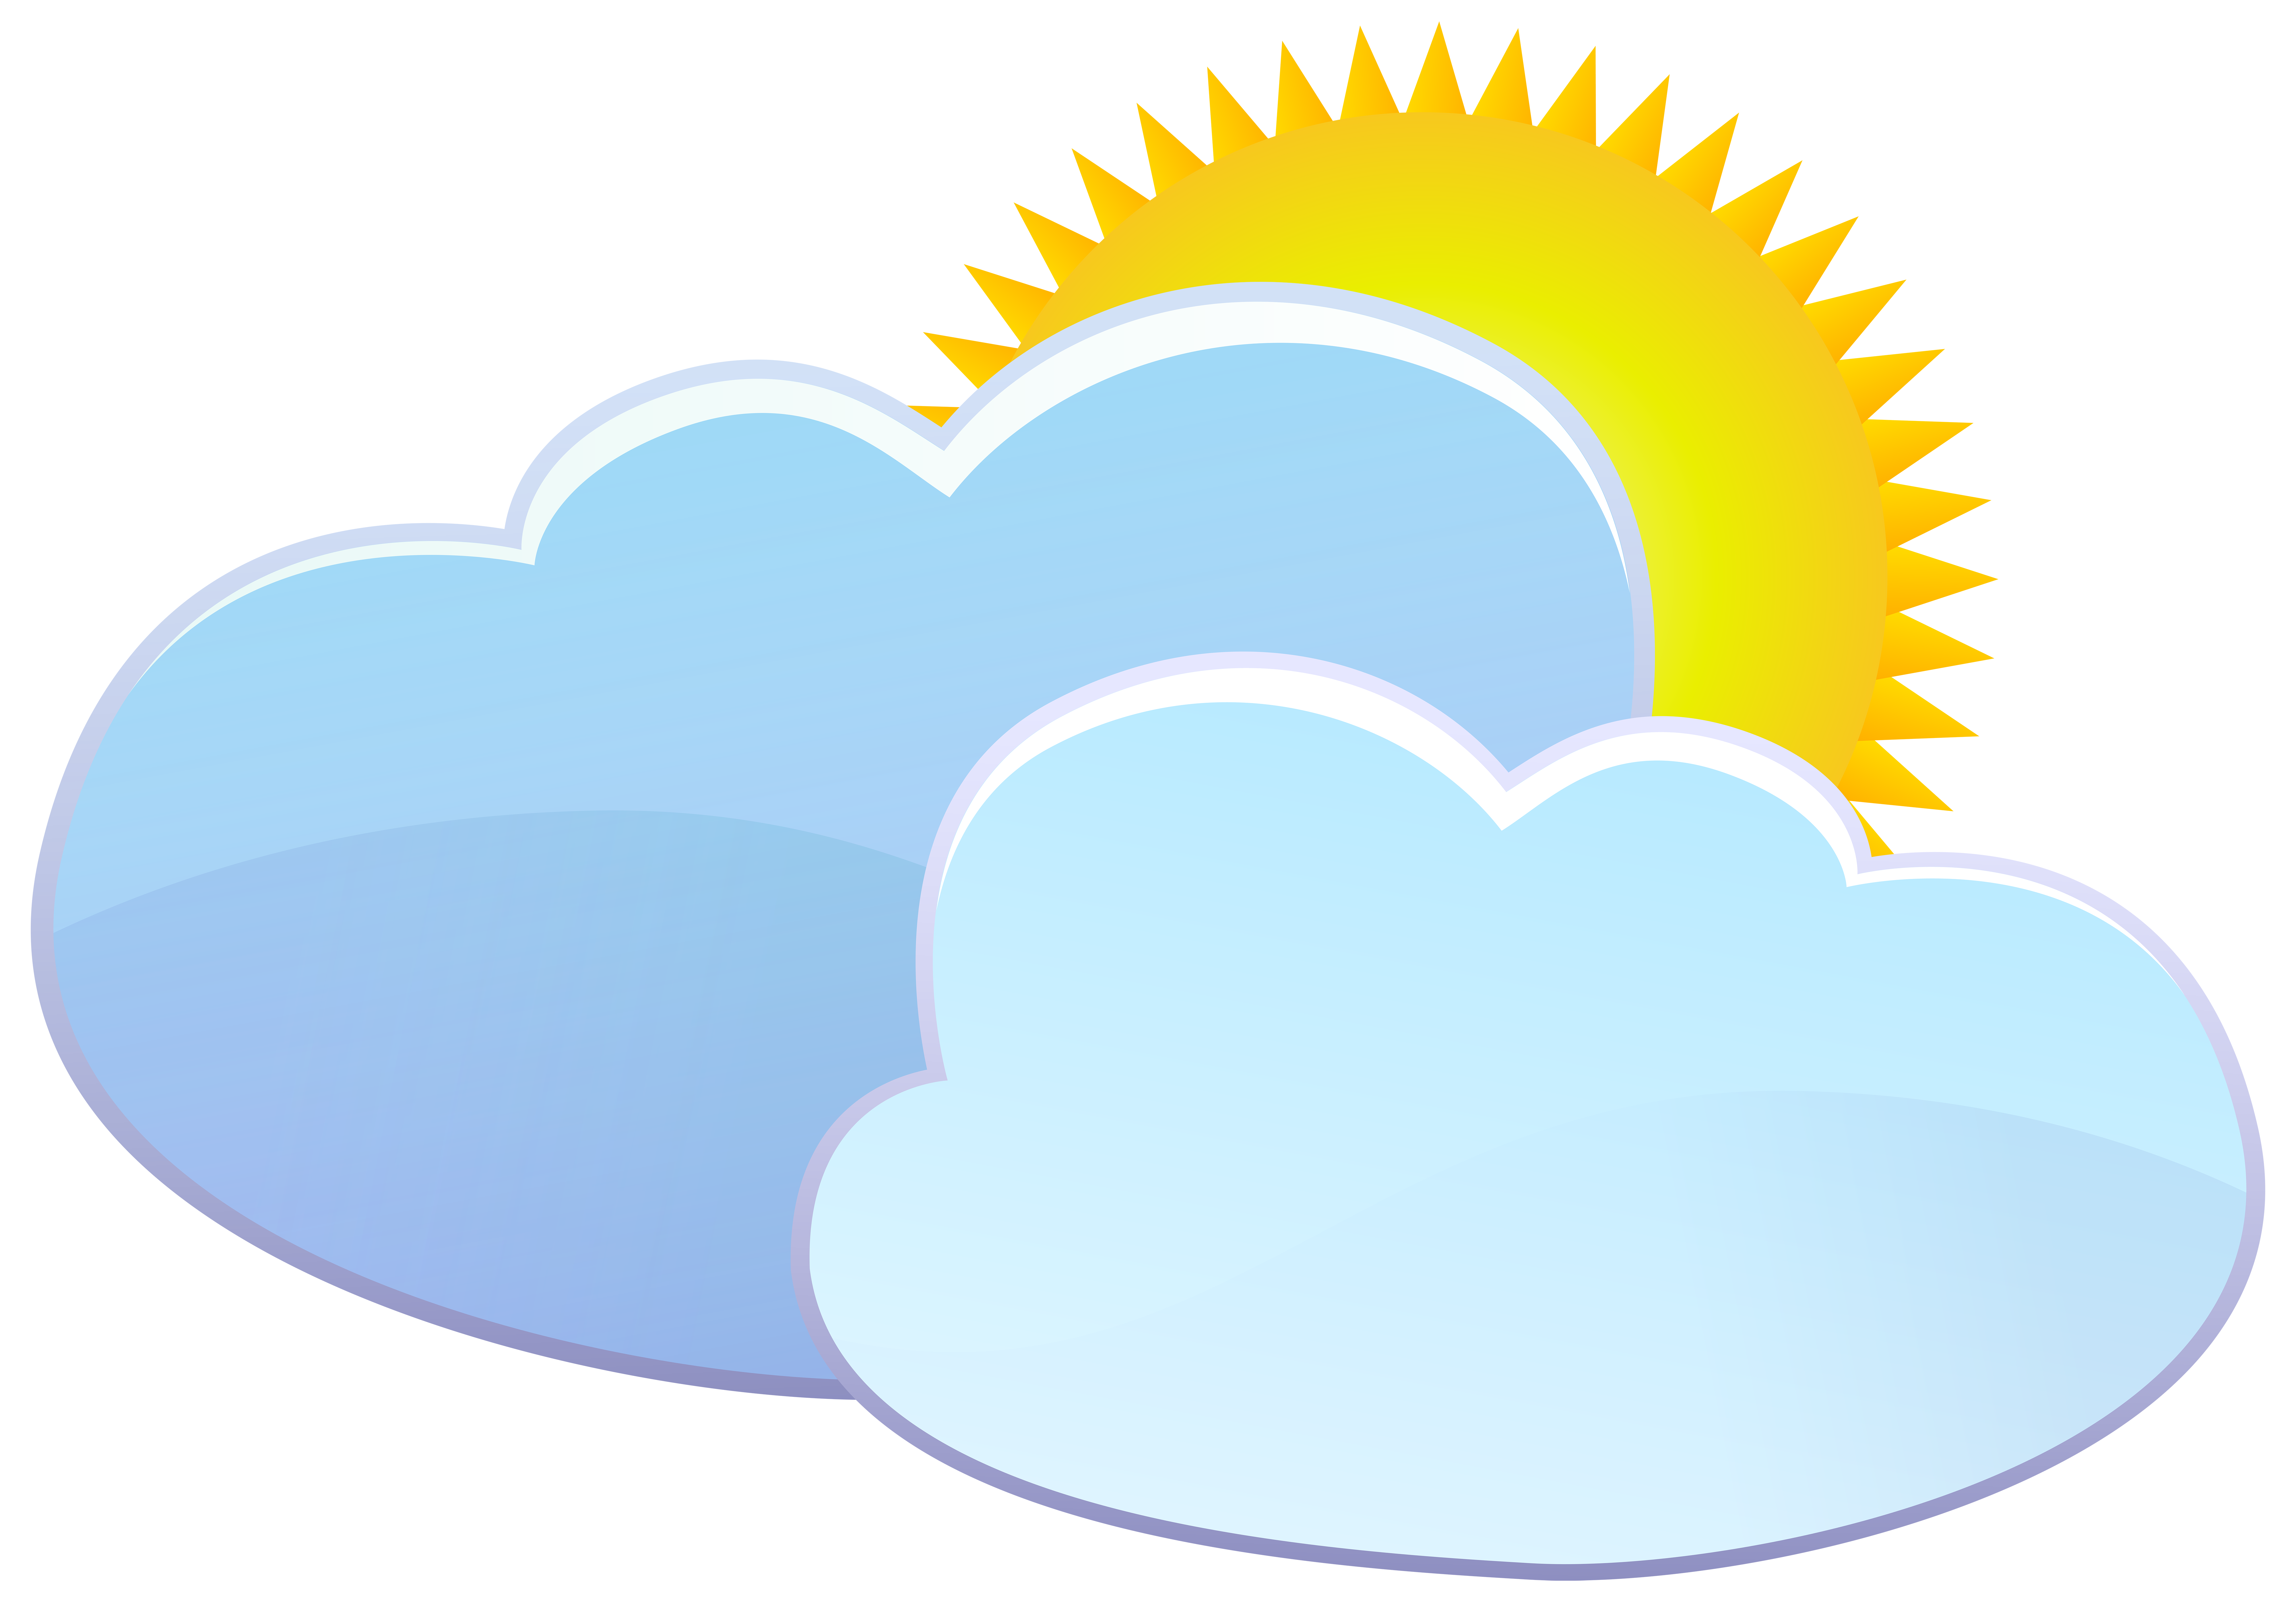 And sun weather icon. Orange clipart clouds